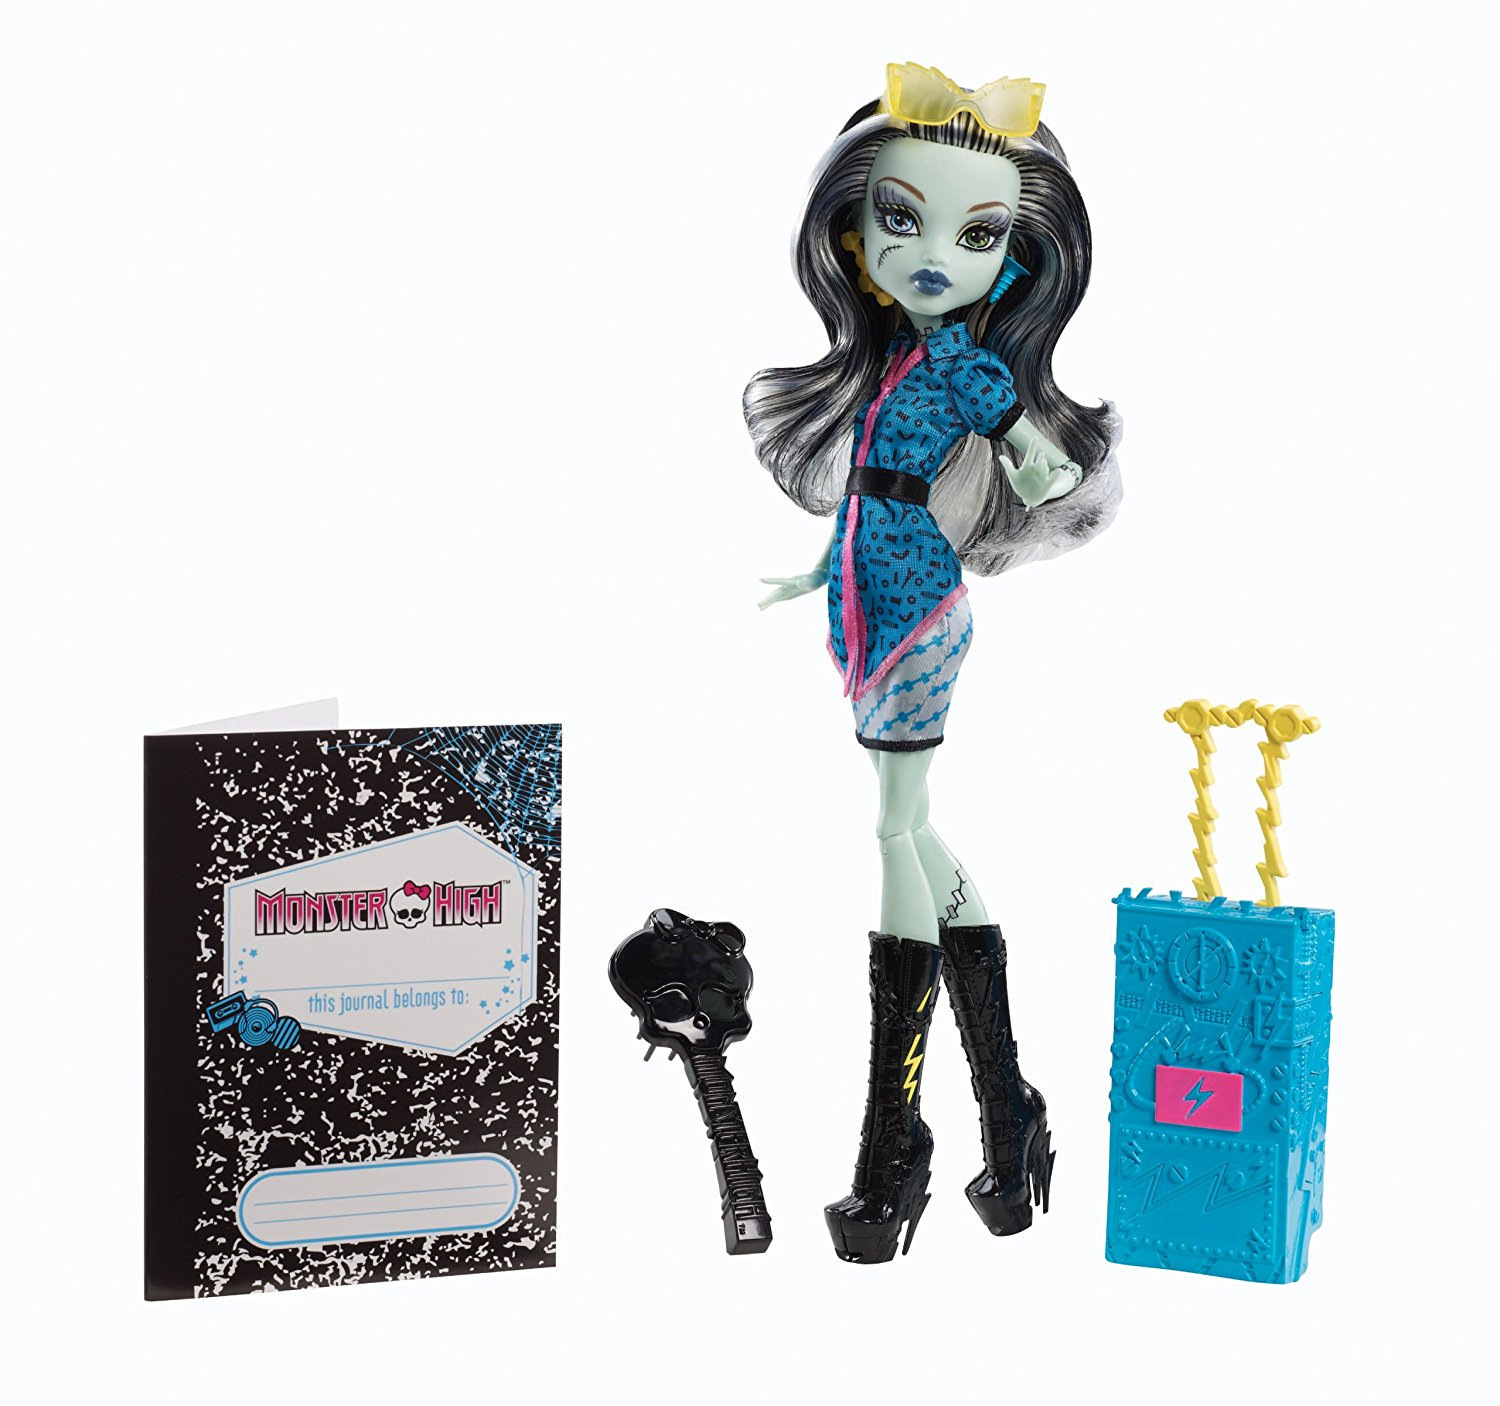 Travel Scaris Frankie Stein Doll, gift Discontinued New Rev HairRaising Frankie BrandBoo Electrified Scaremester Calaveras Reef DeMew Students Dolls Deluxe Child.., By Monster High